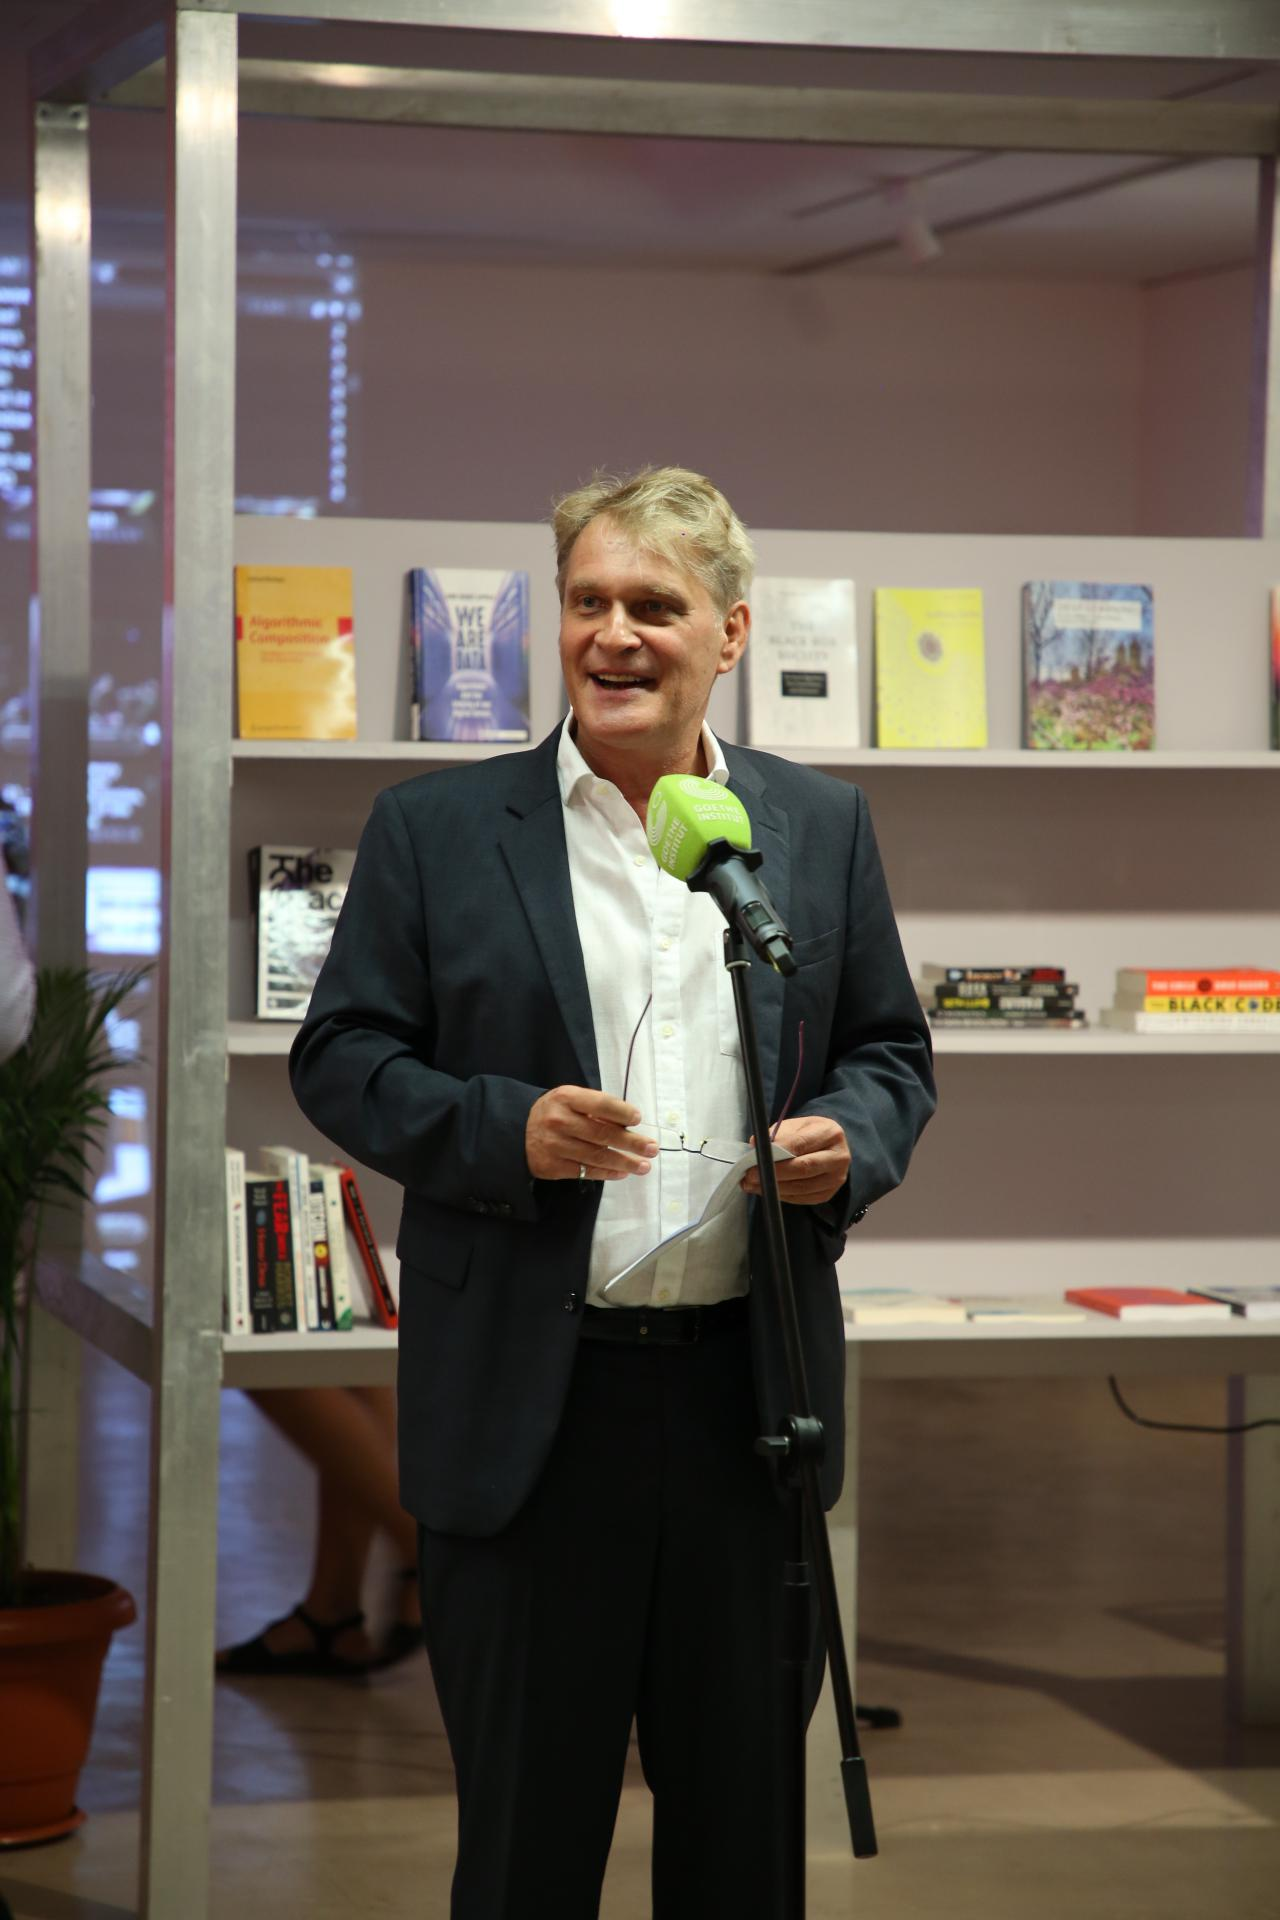 Dr. Martin Wälde, Director of the Goethe-Institut Max Mueller Bhavan Mumbai, speaks at the opening.